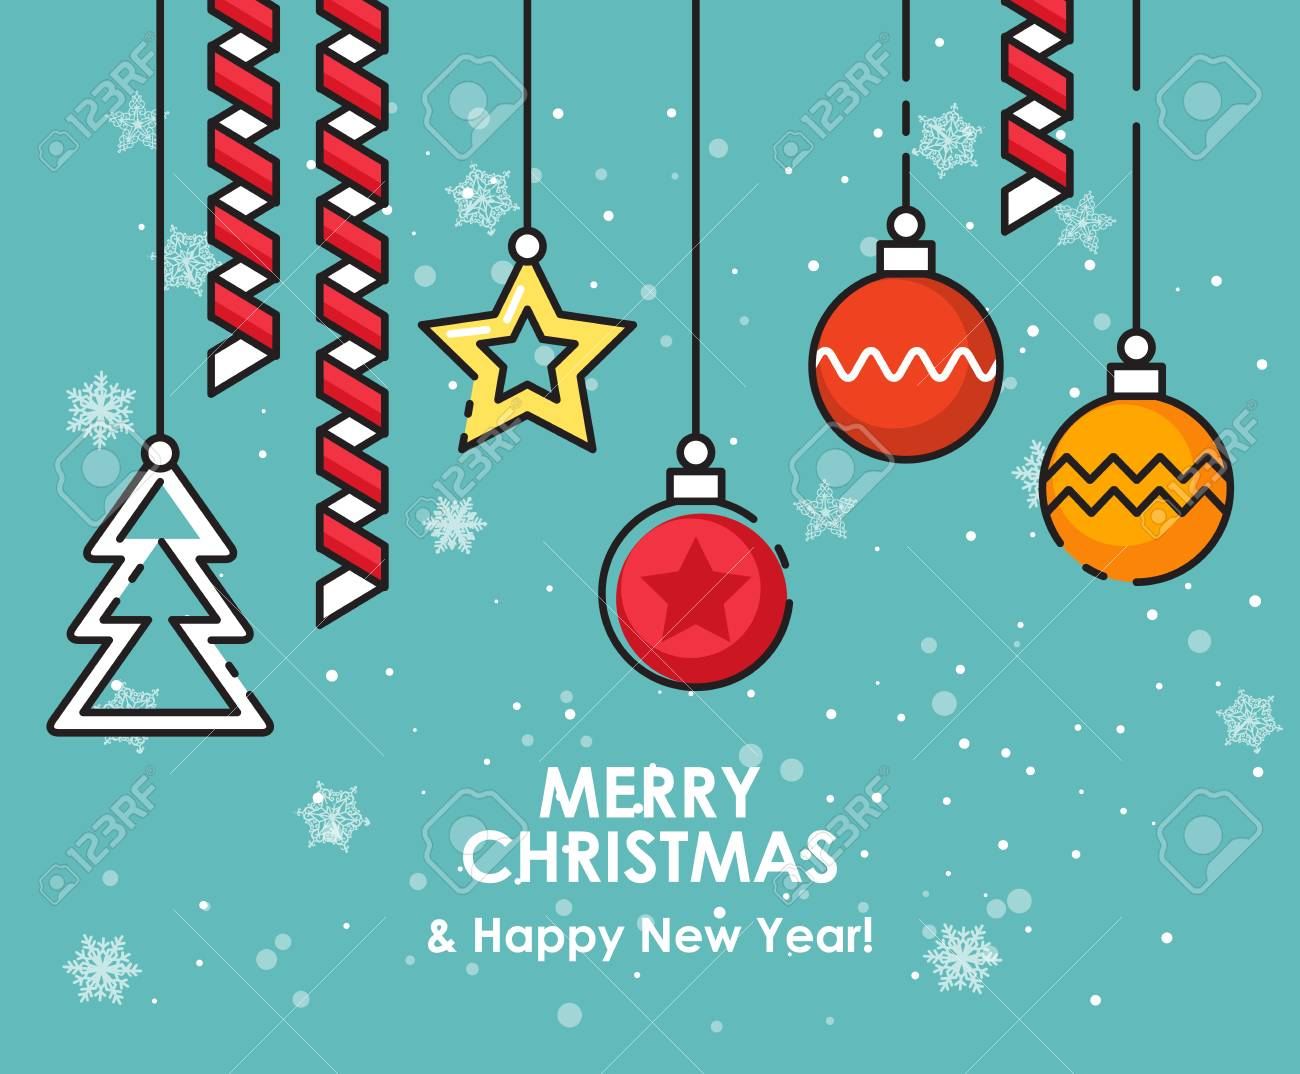 Christmas And New Year Wishes.Merry Christmas Greeting Card Happy New Year Wishes Poster